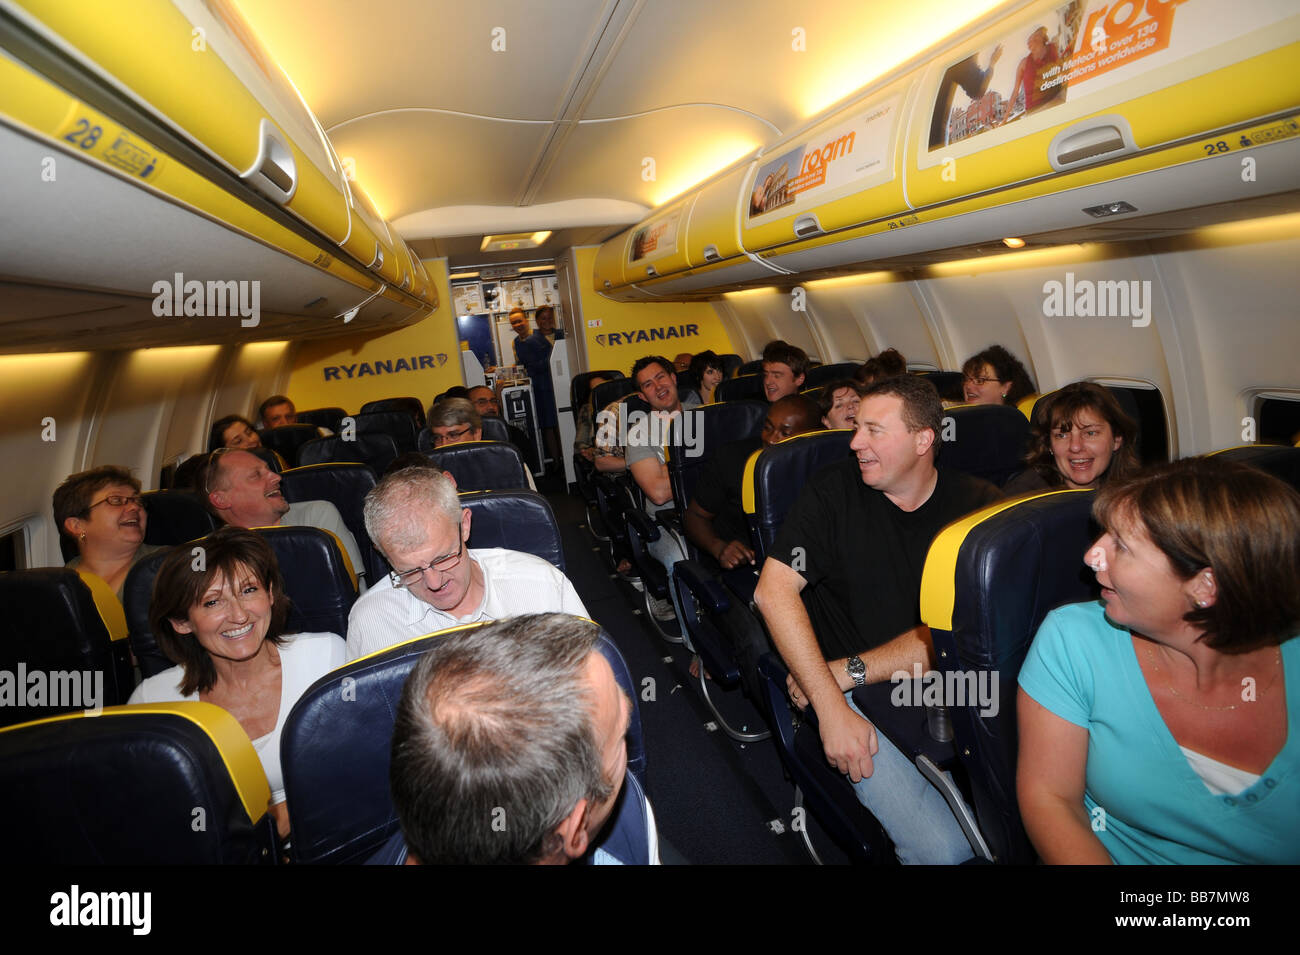 Airline passengers traveling on budget Jet - Stock Image